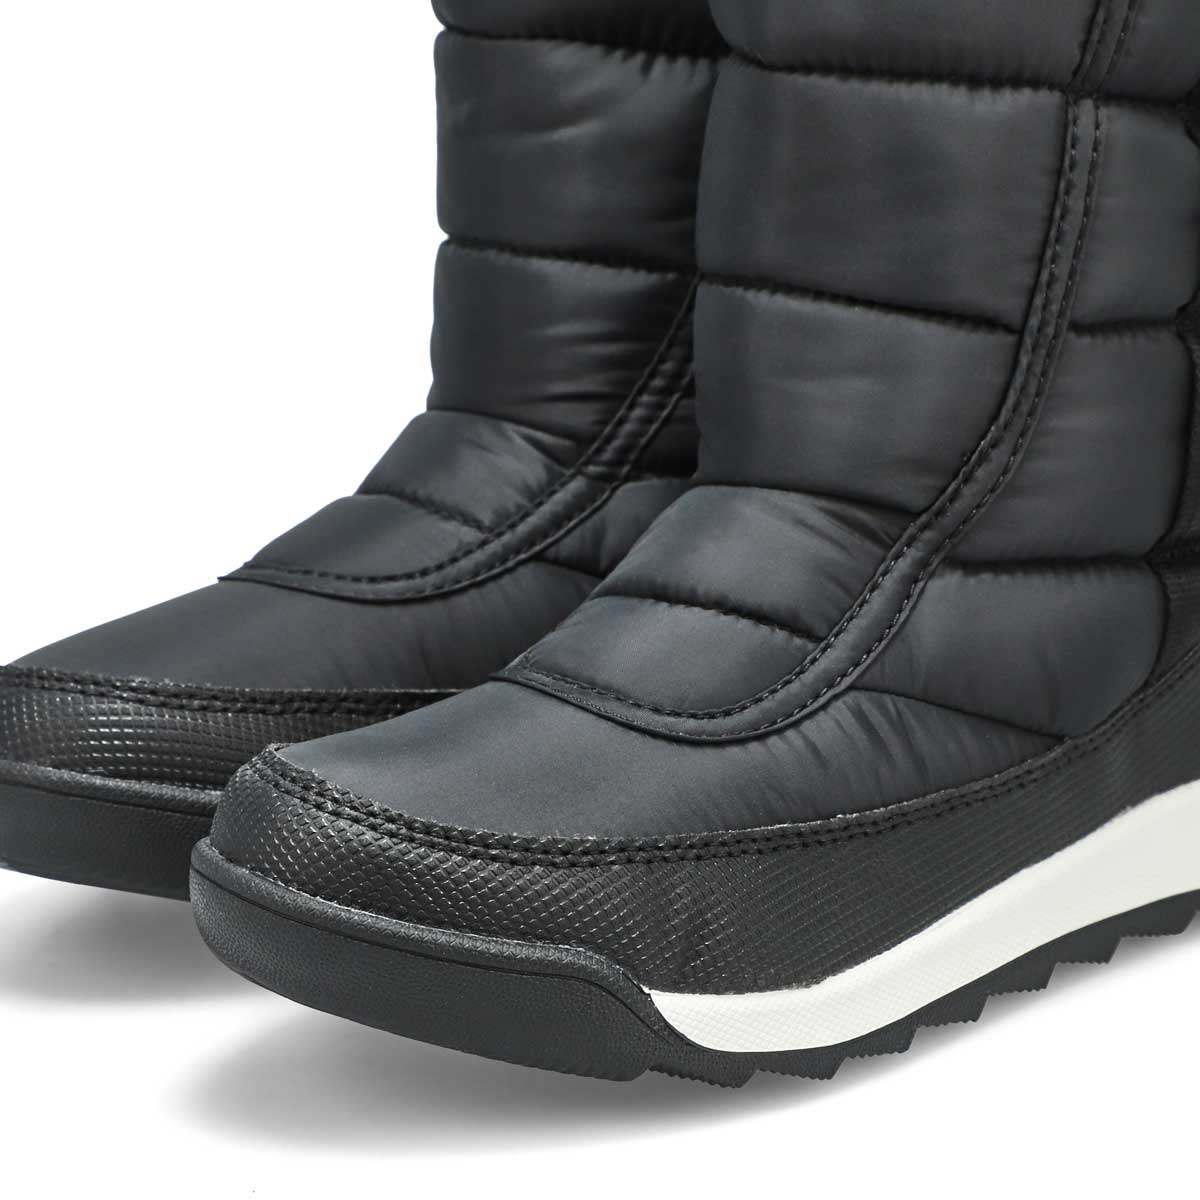 Botte imperméable Whitney II Puffy Mid, nr, fille